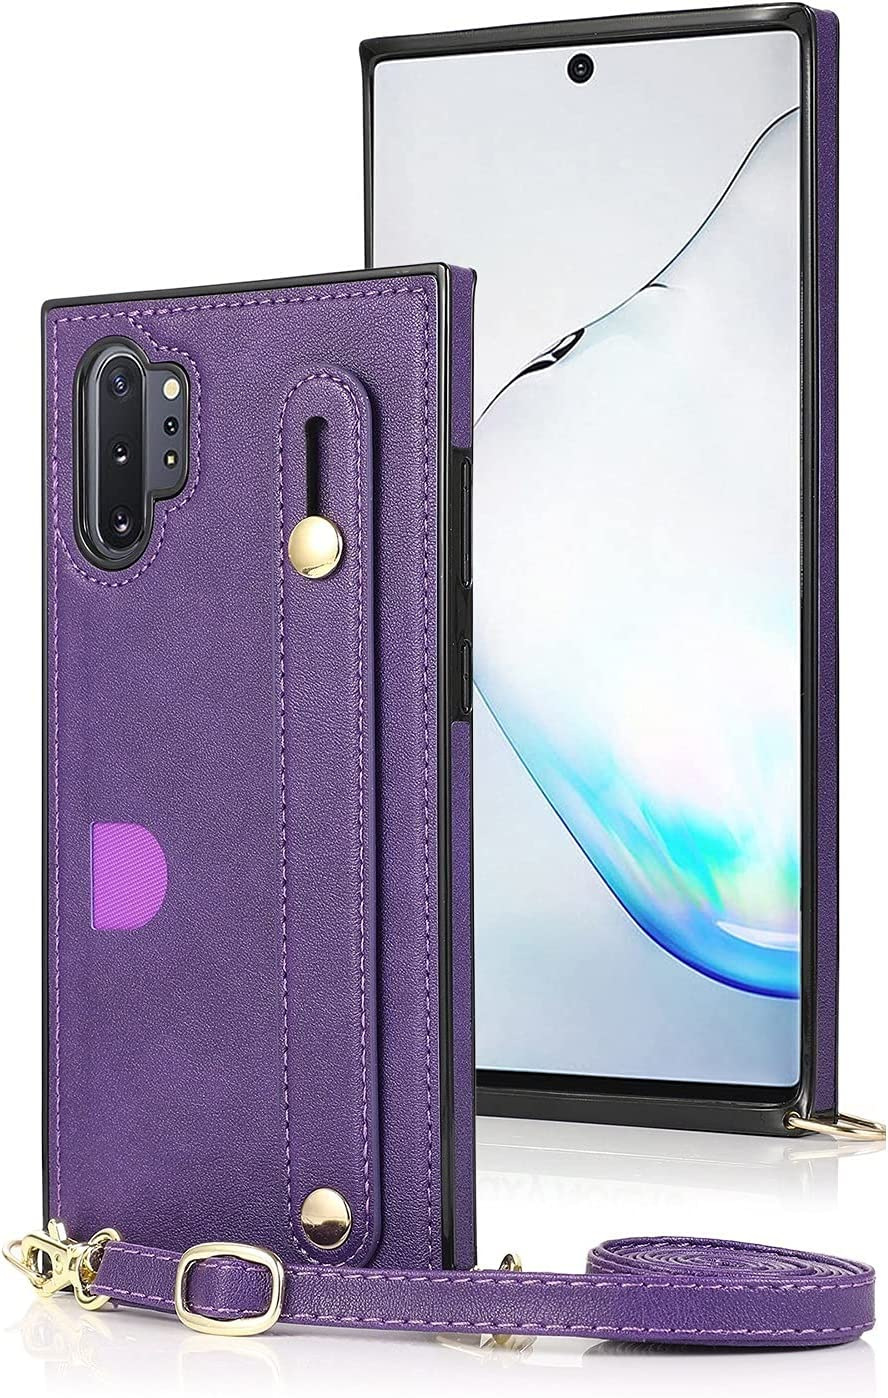 Case for Samsung Galaxy Note 10 Pro, Leather Case with Credit Card Slot Non-Slip Buckle Holder/Crossbody Long Lanyard, Shockproof Leather TPU Case Cover for Galaxy Note 10 Pro (Color : Purple)